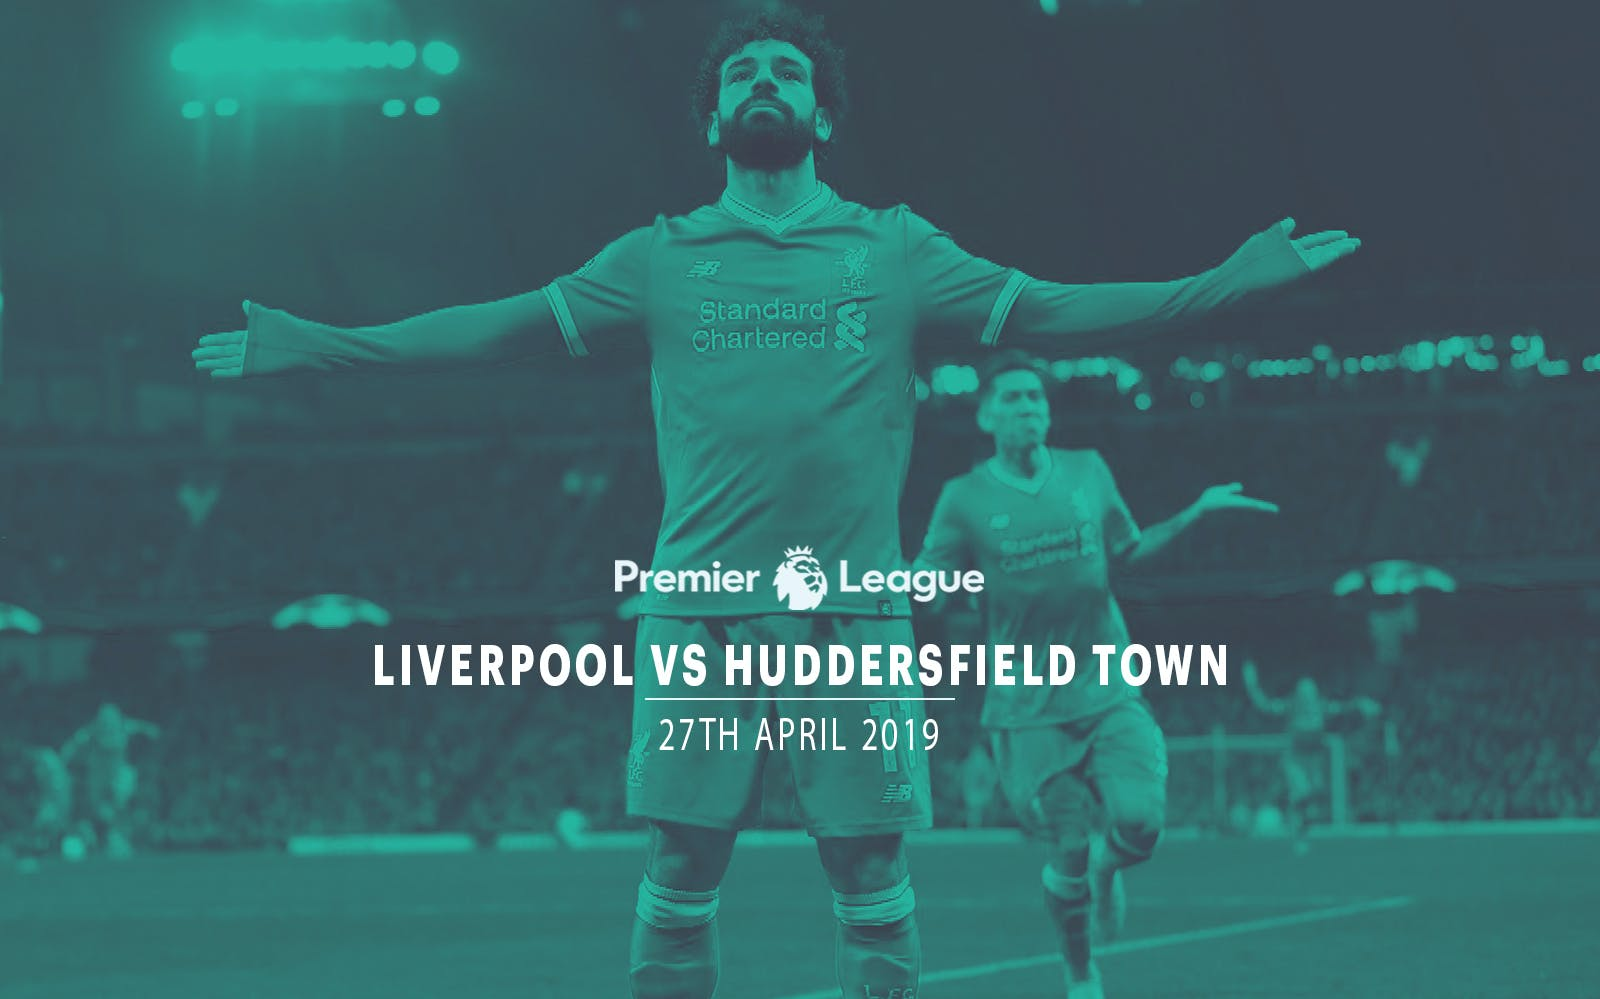 liverpool vs huddersfield town - 27th apr'19-1